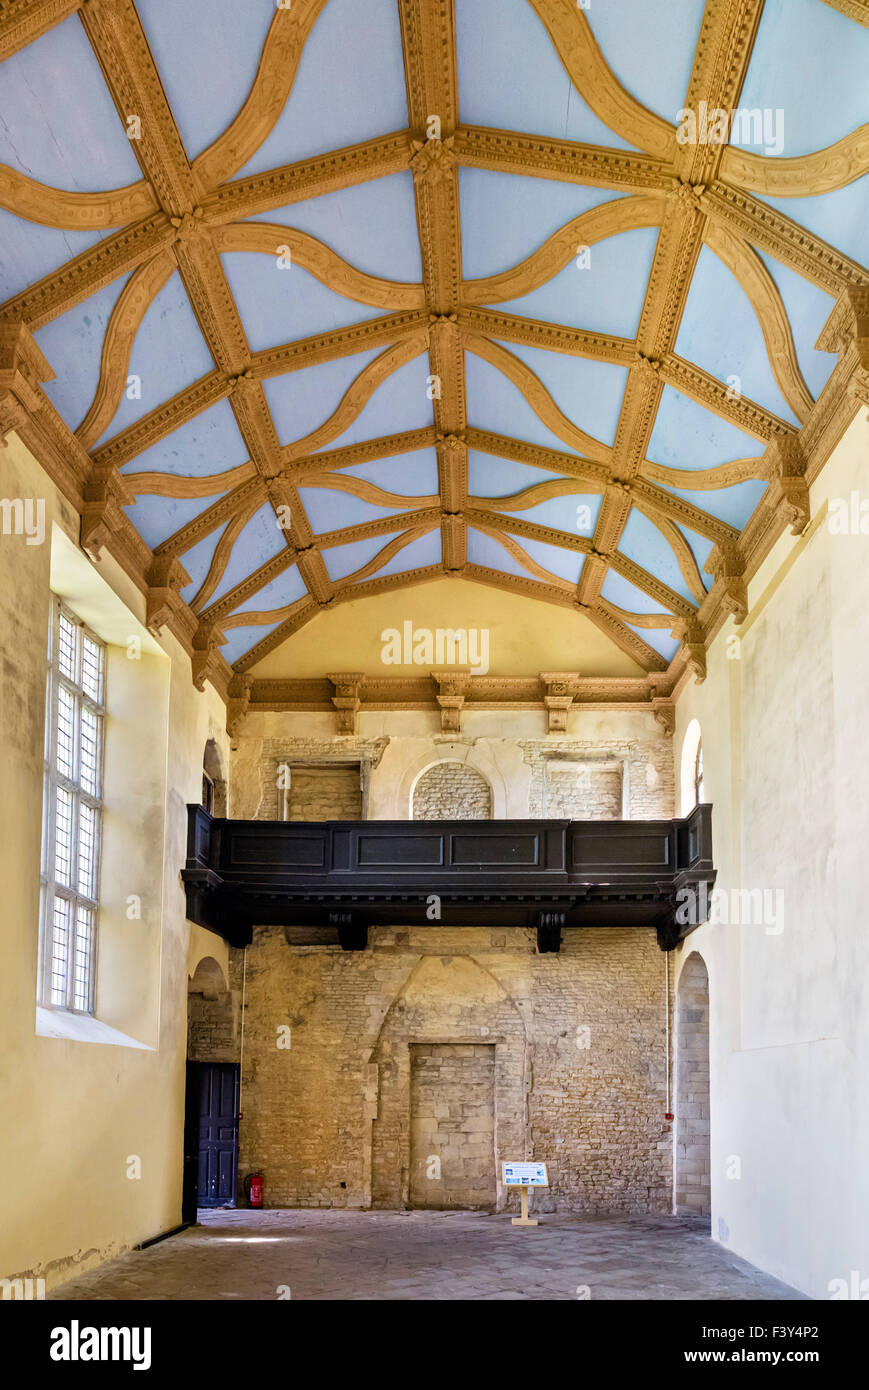 The Great Hall, undergoing renovation in Kirby Hall, a ruined 16thC Elizabethan country house nr Gretton, Northants, - Stock Image